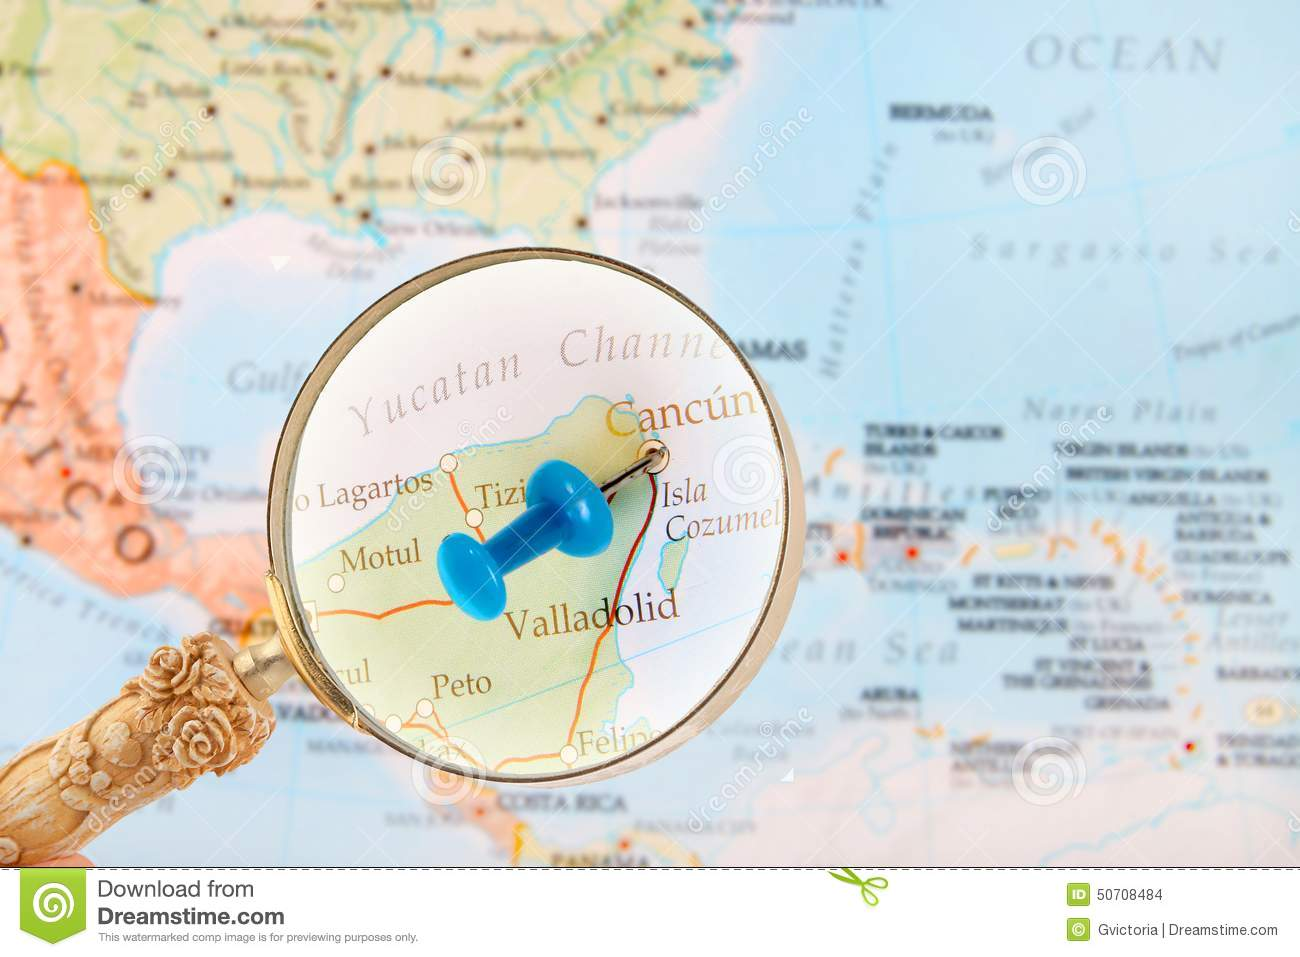 Looking In On Cancun, Mexico Stock Photo - Image of mexico, capital on